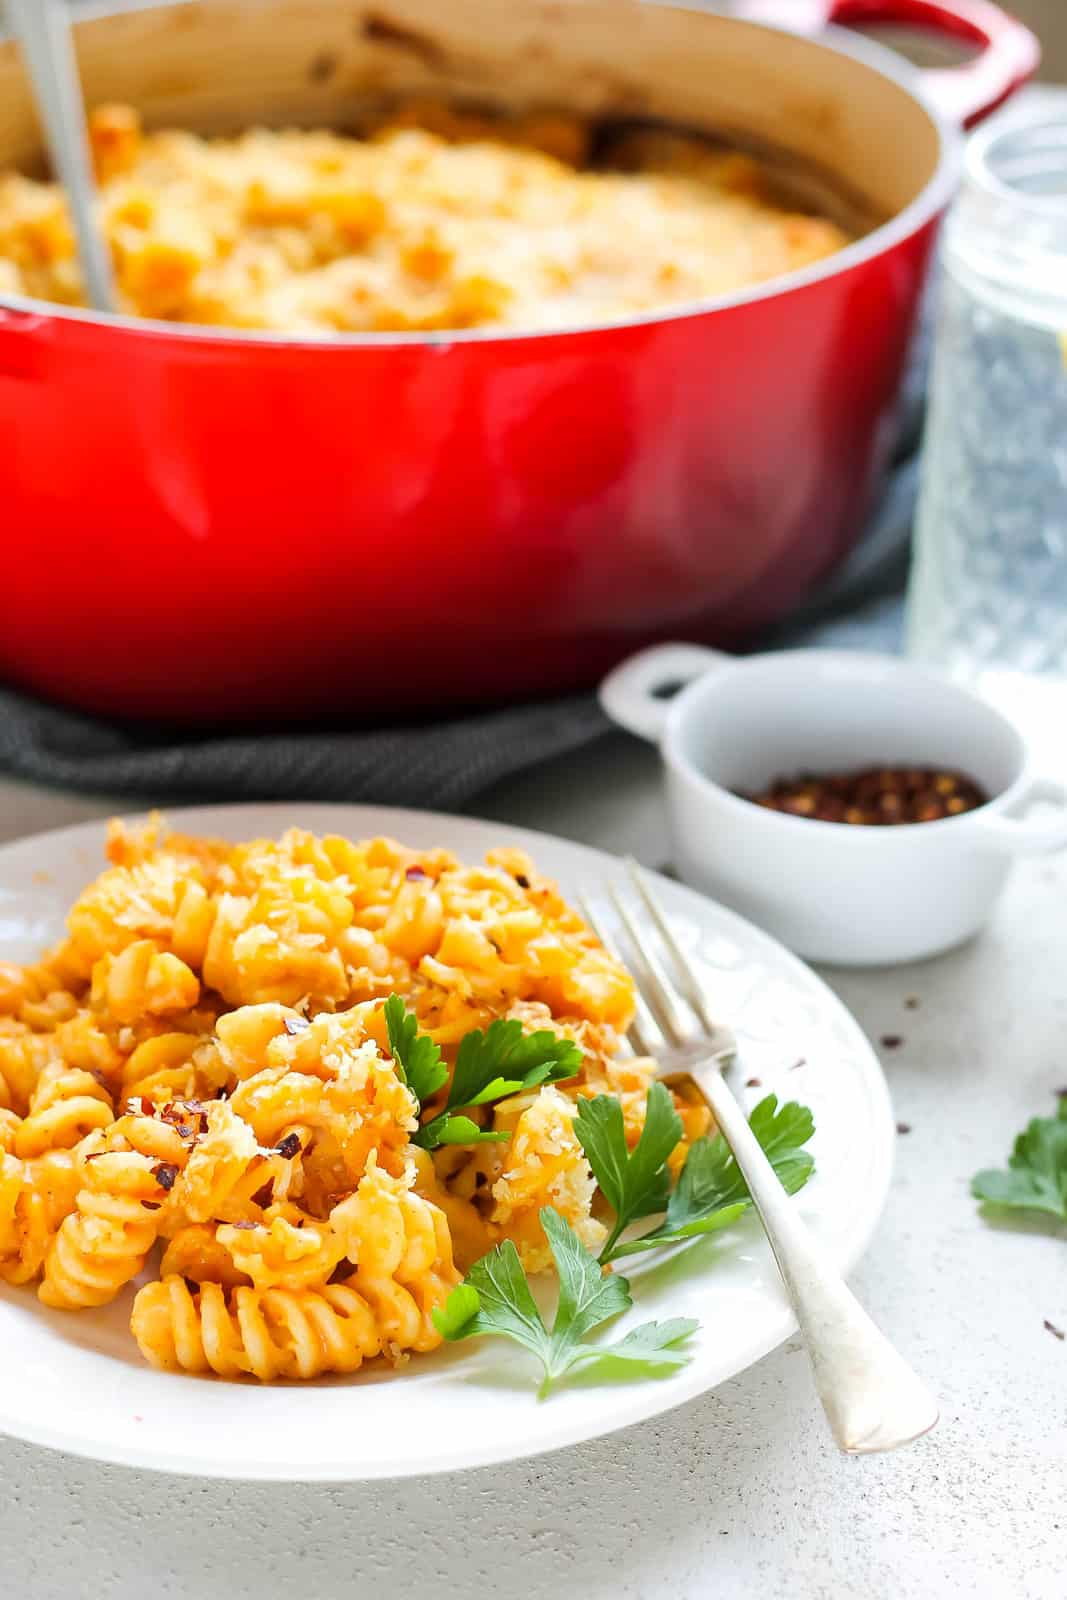 pumpkin mac and cheese on a white plate with a red casserole in the background